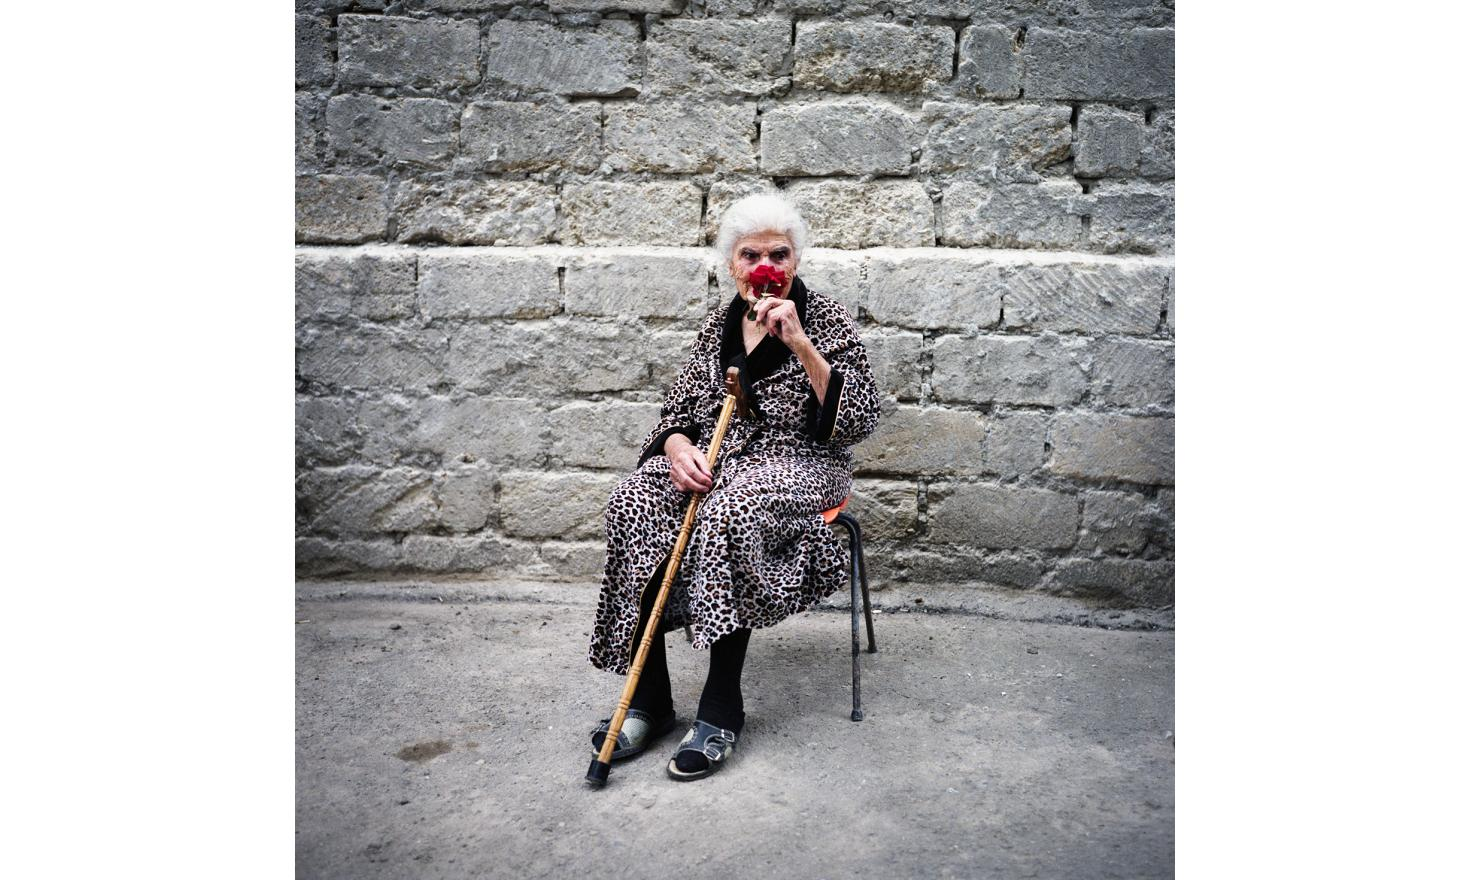 She's 96 years old and a Bakou refugee. She lives in the only nursing home of the country. One of her sons is dead, the other is imprisoned whithout her knowing. That's why she lives in this institution. Usually seniors are in charge of family.